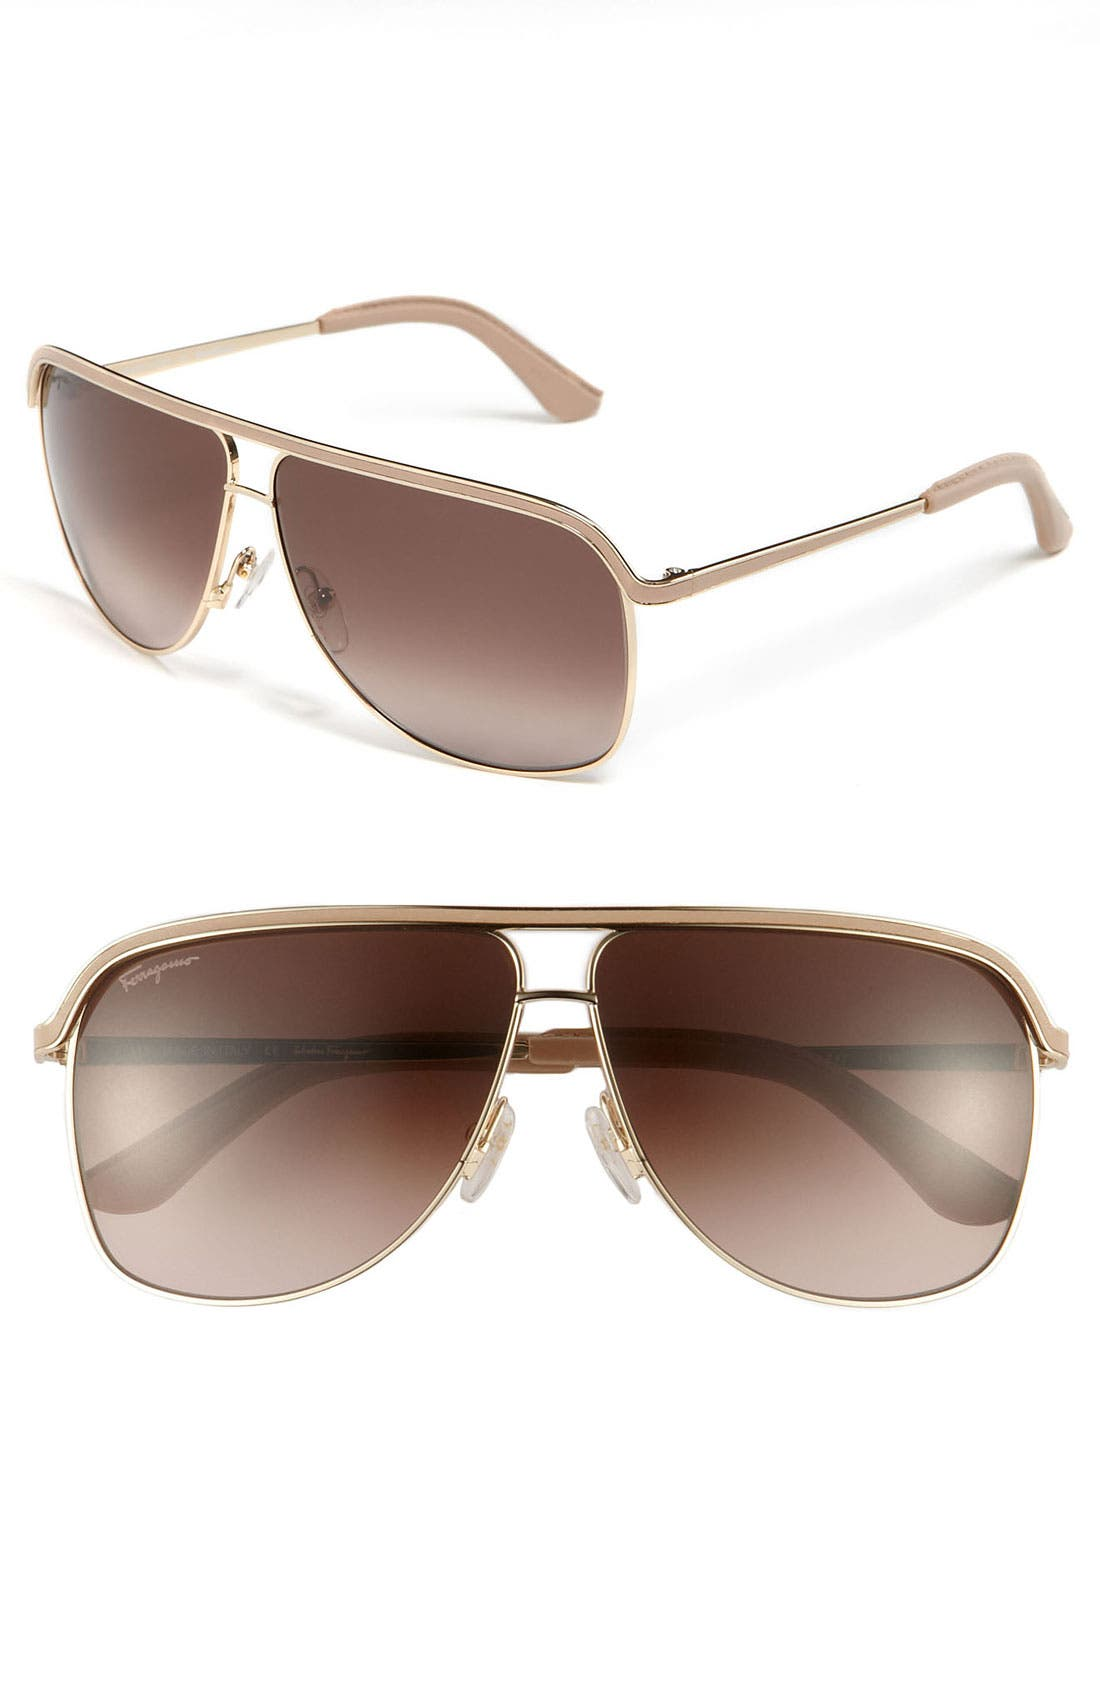 Main Image - Salvatore Ferragamo 62mm Aviator Sunglasses